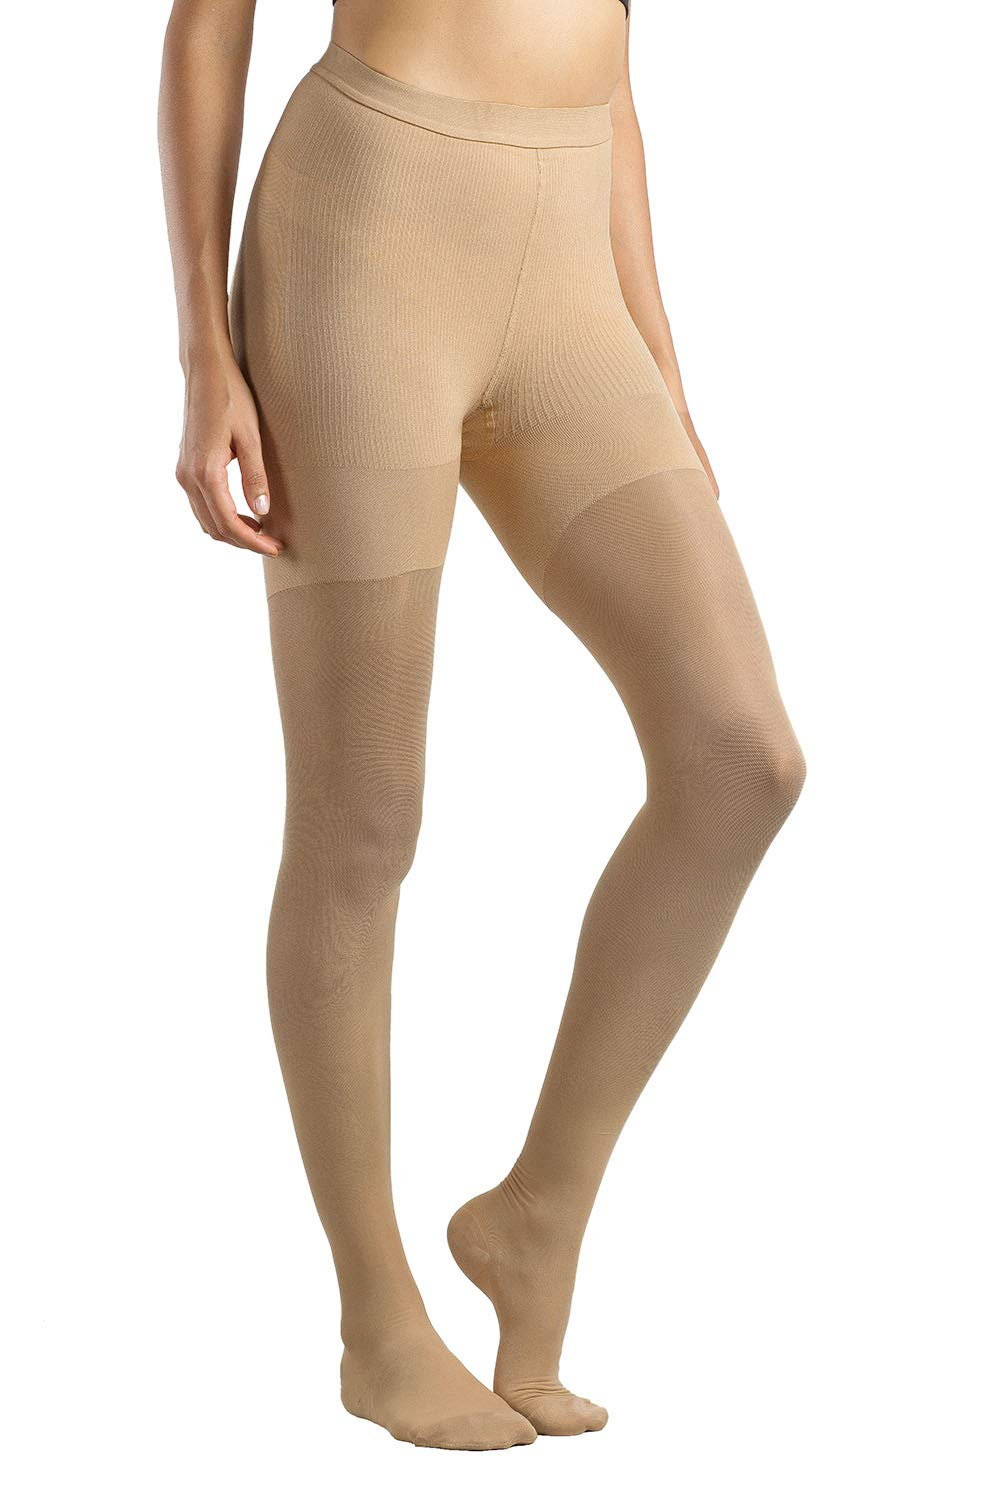 cb15477787932 Amazon.com: +MD Sheer Compression Pantyhose 15-20mmHg Medical Graduated Anti -Embolism Stocking for Edema, Varicose Veins, Blood Clot NudeM: Health ...